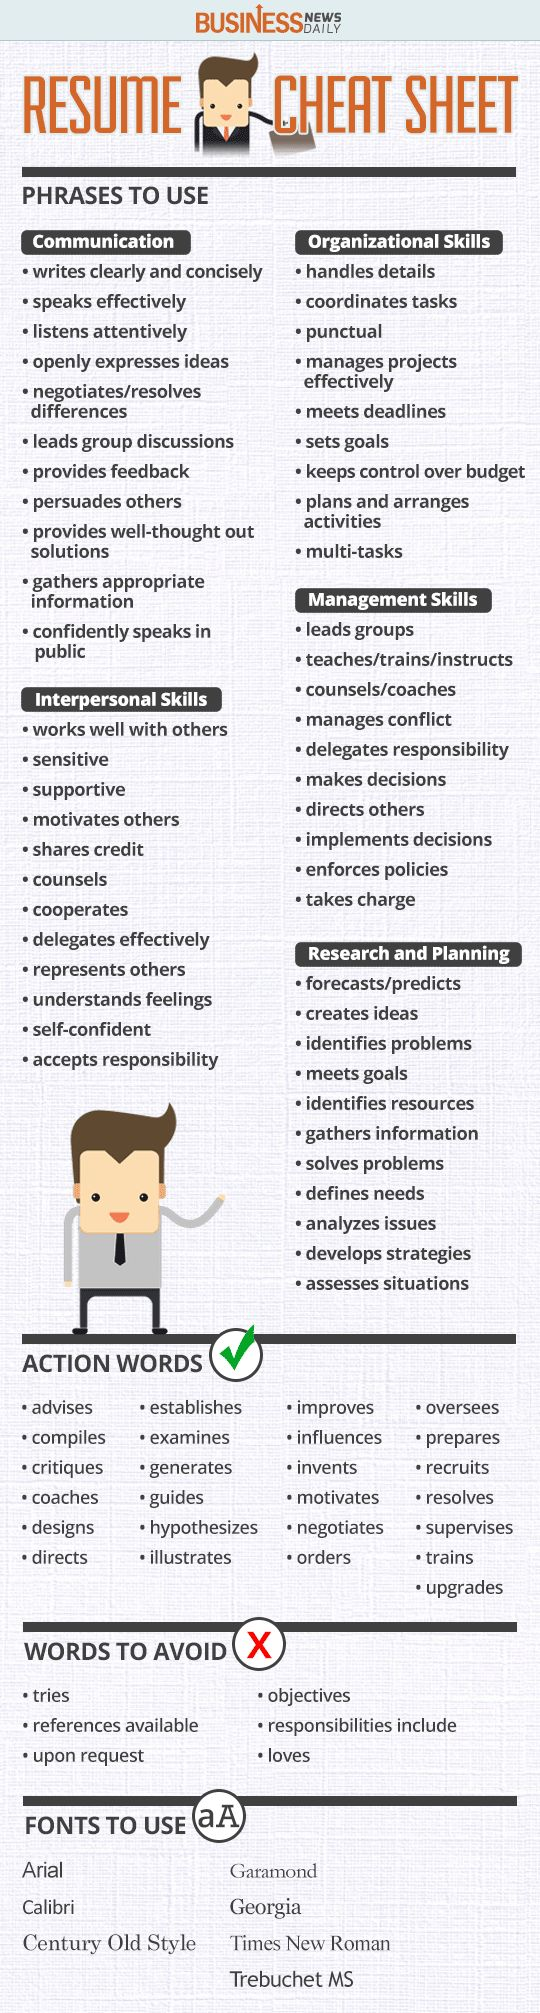 Opposenewapstandardsus  Prepossessing  Ideas About Resume On Pinterest  Cv Format Resume Cv And  With Exciting Resume Cheat Sheet Infographic Andrews Almost Done With A Complete Unit On Employment Which With Nice What To Include In A College Resume Also Supervisor Resume Templates In Addition Google Docs Resumes And Summary Examples For Resumes As Well As Active Words For Resumes Additionally Cover Resume Letter From Pinterestcom With Opposenewapstandardsus  Exciting  Ideas About Resume On Pinterest  Cv Format Resume Cv And  With Nice Resume Cheat Sheet Infographic Andrews Almost Done With A Complete Unit On Employment Which And Prepossessing What To Include In A College Resume Also Supervisor Resume Templates In Addition Google Docs Resumes From Pinterestcom